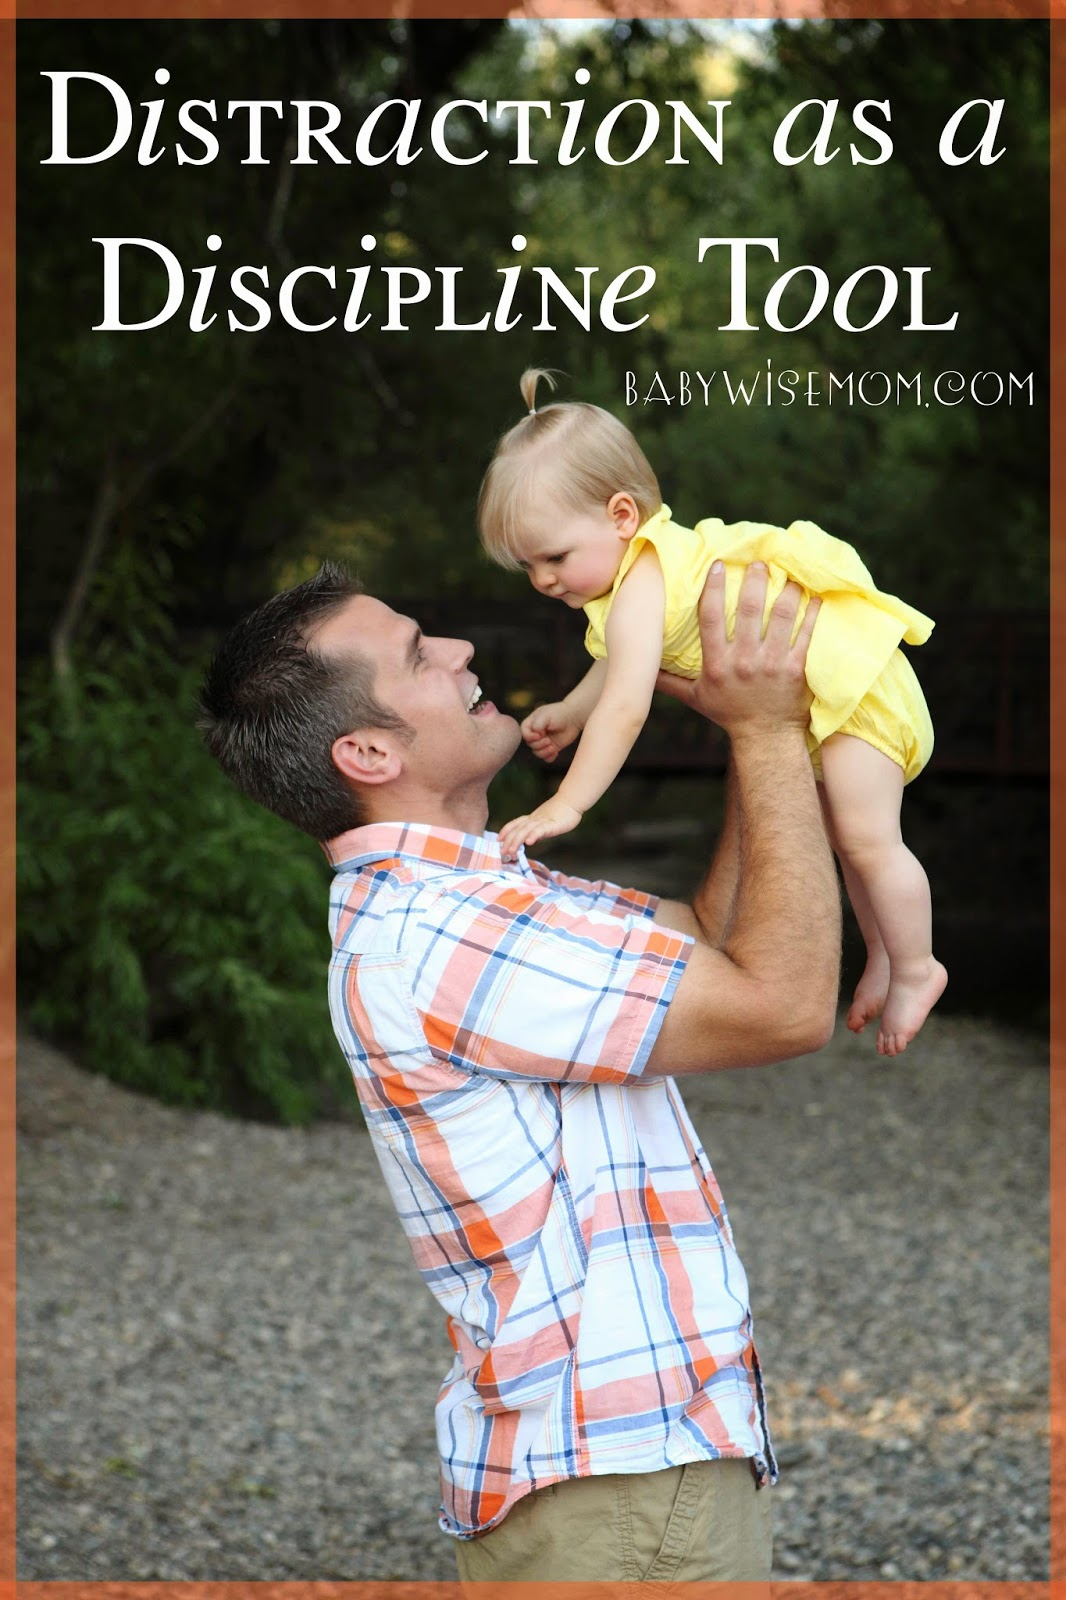 Distraction as a Discipline Tool - click to read